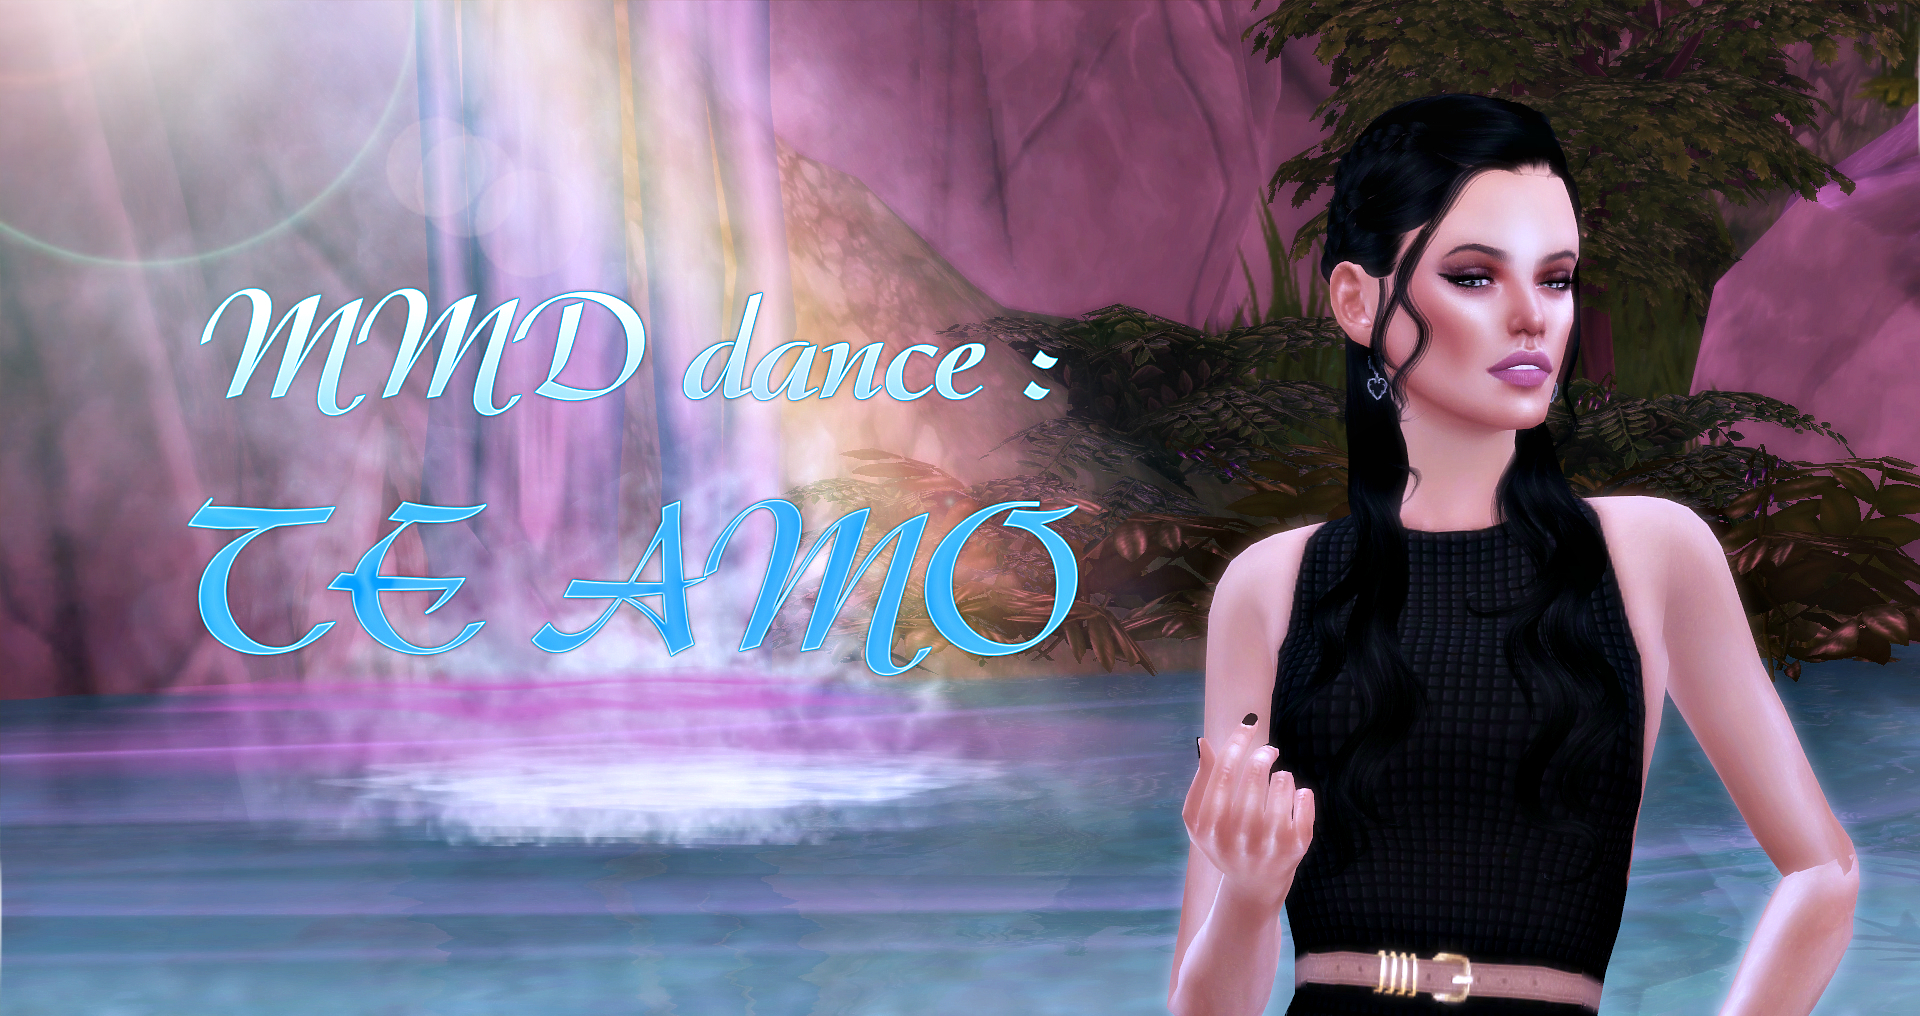 The sims 4 - MMD dance: TE AMO by conceptdesign97